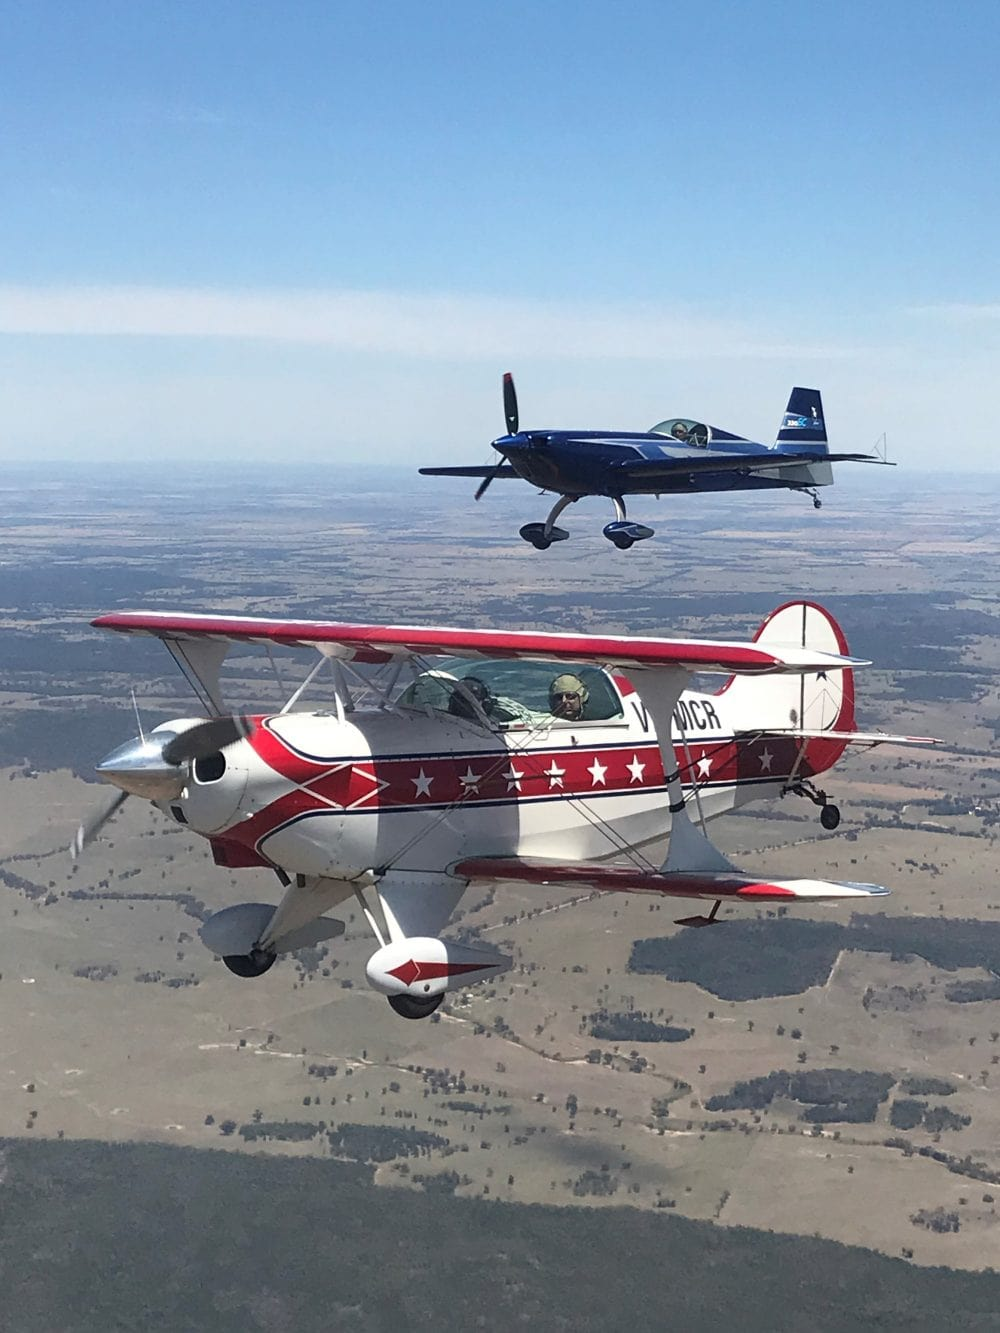 AAA Pitts Special and Extra aerobatic aircraft in formation